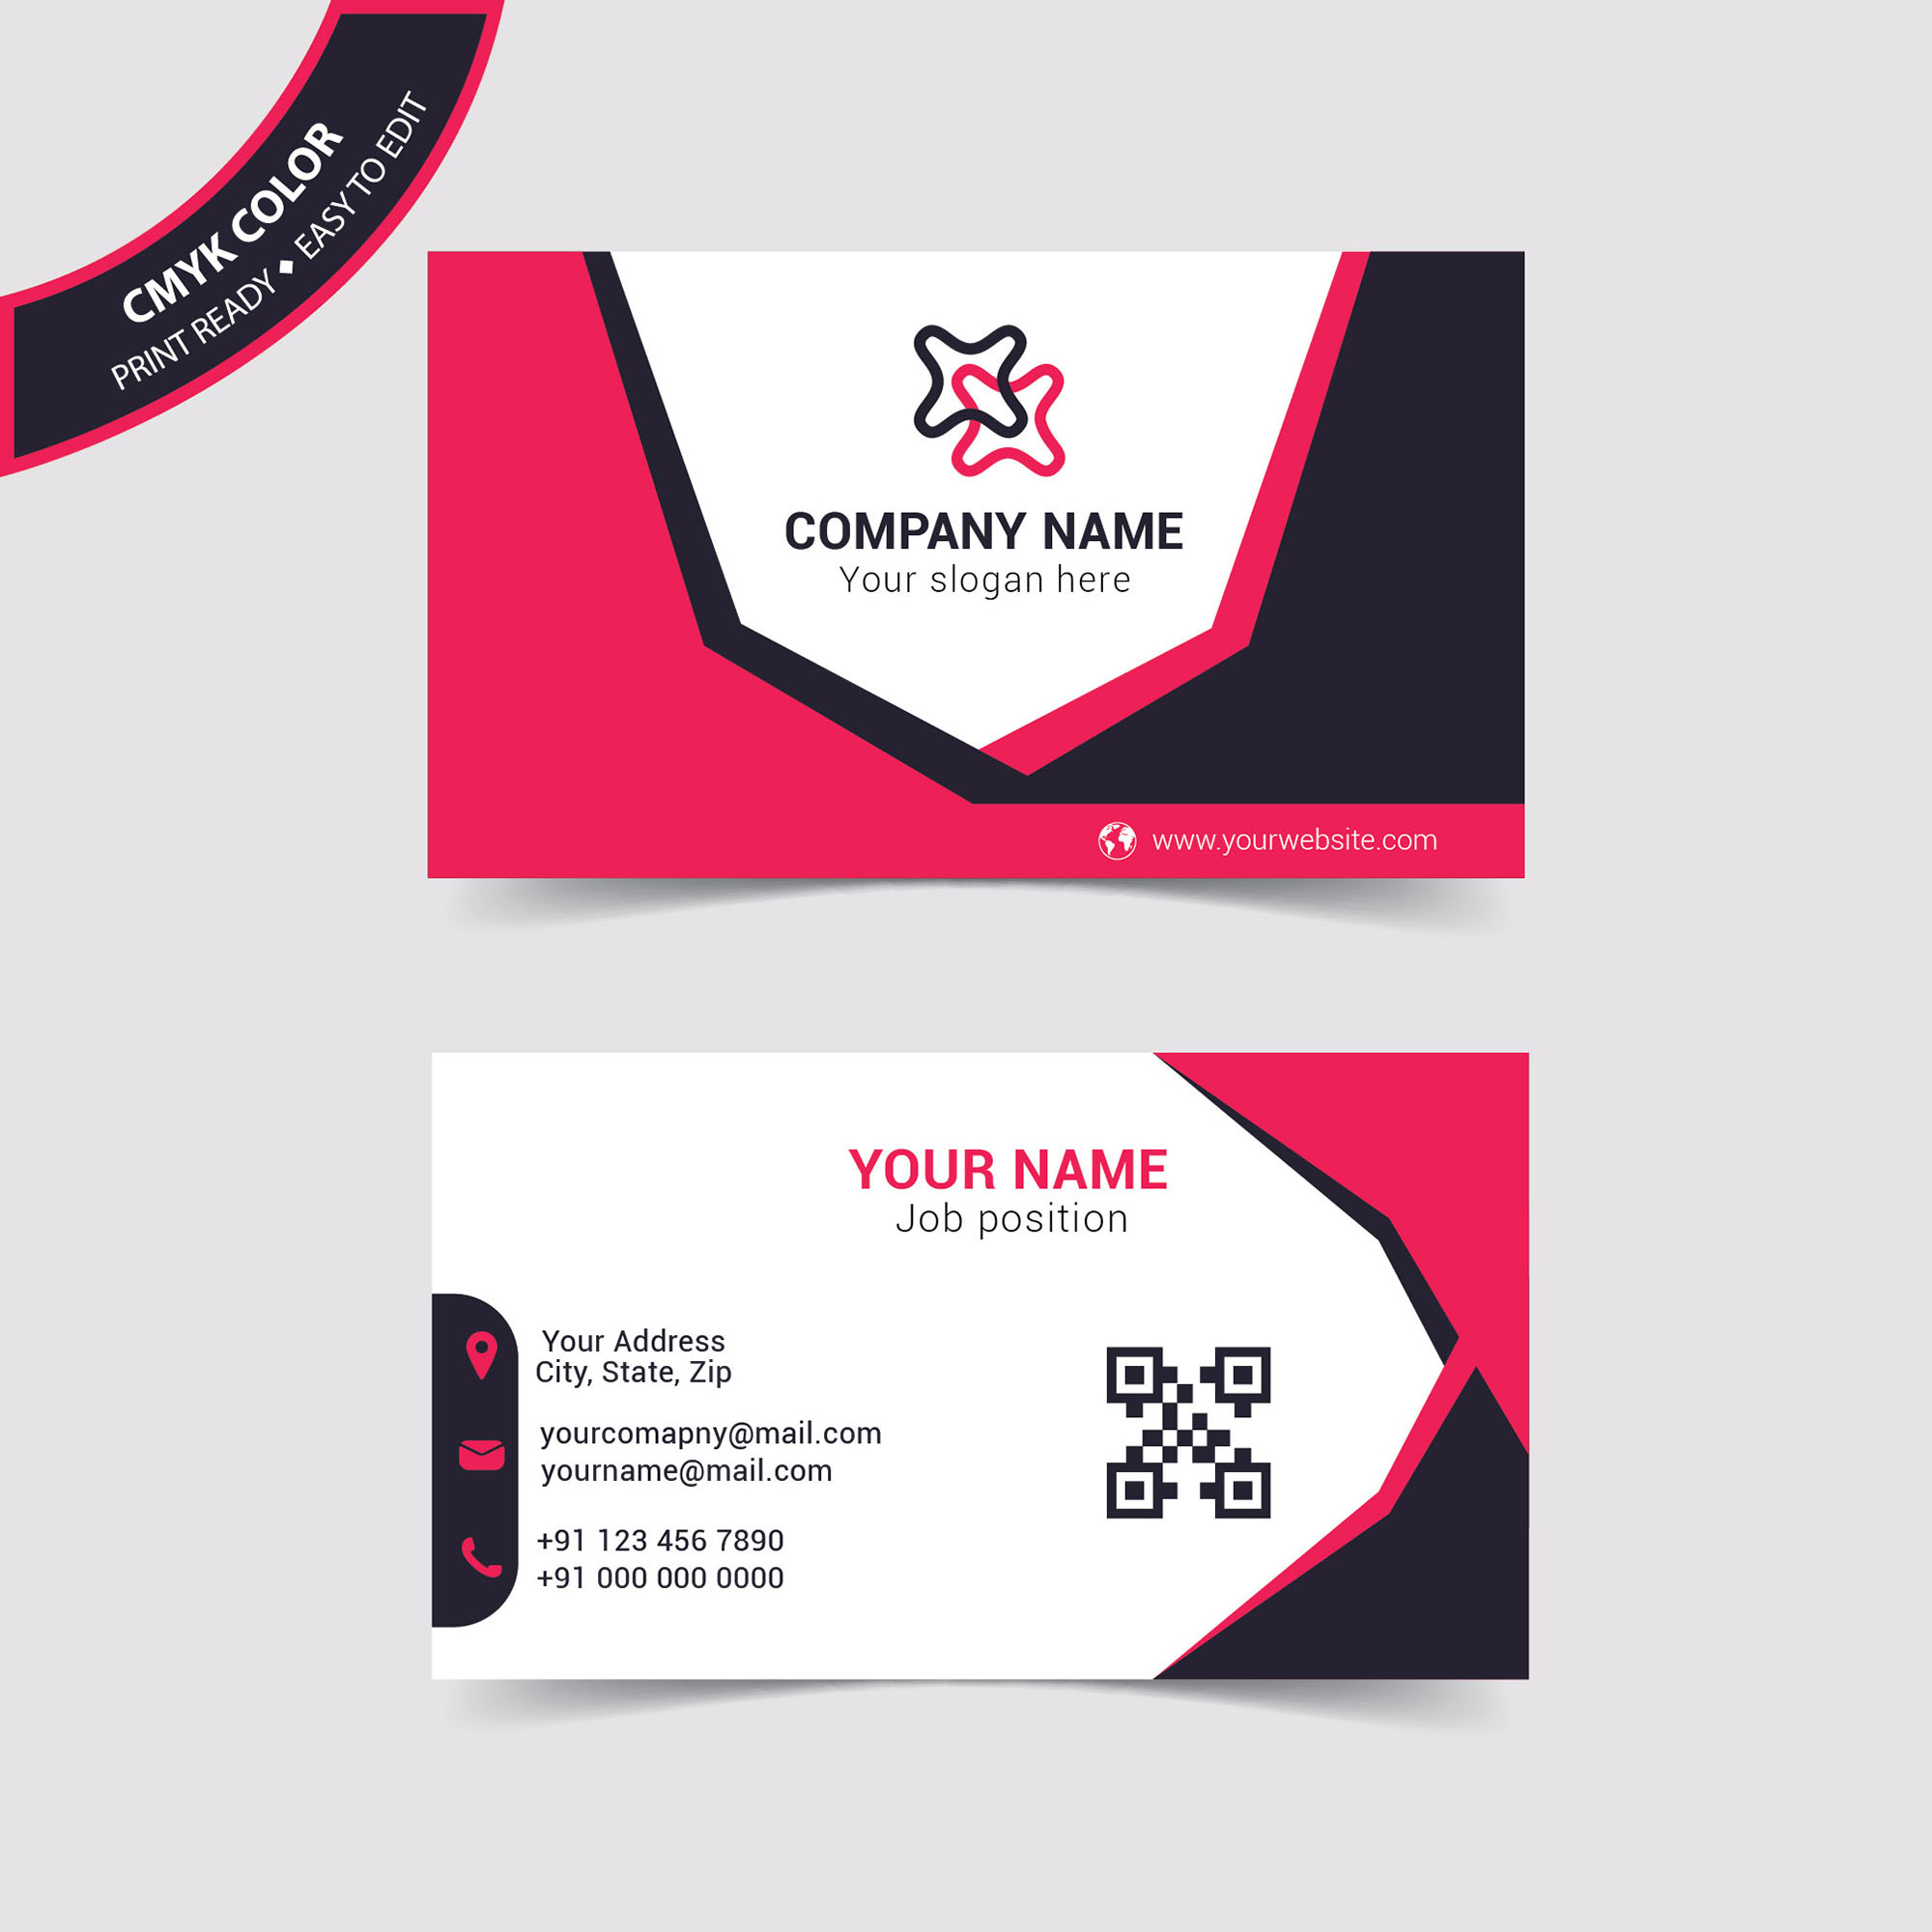 Personal name card design free download print template wisxi business card business cards business card design business card template design templates colourmoves